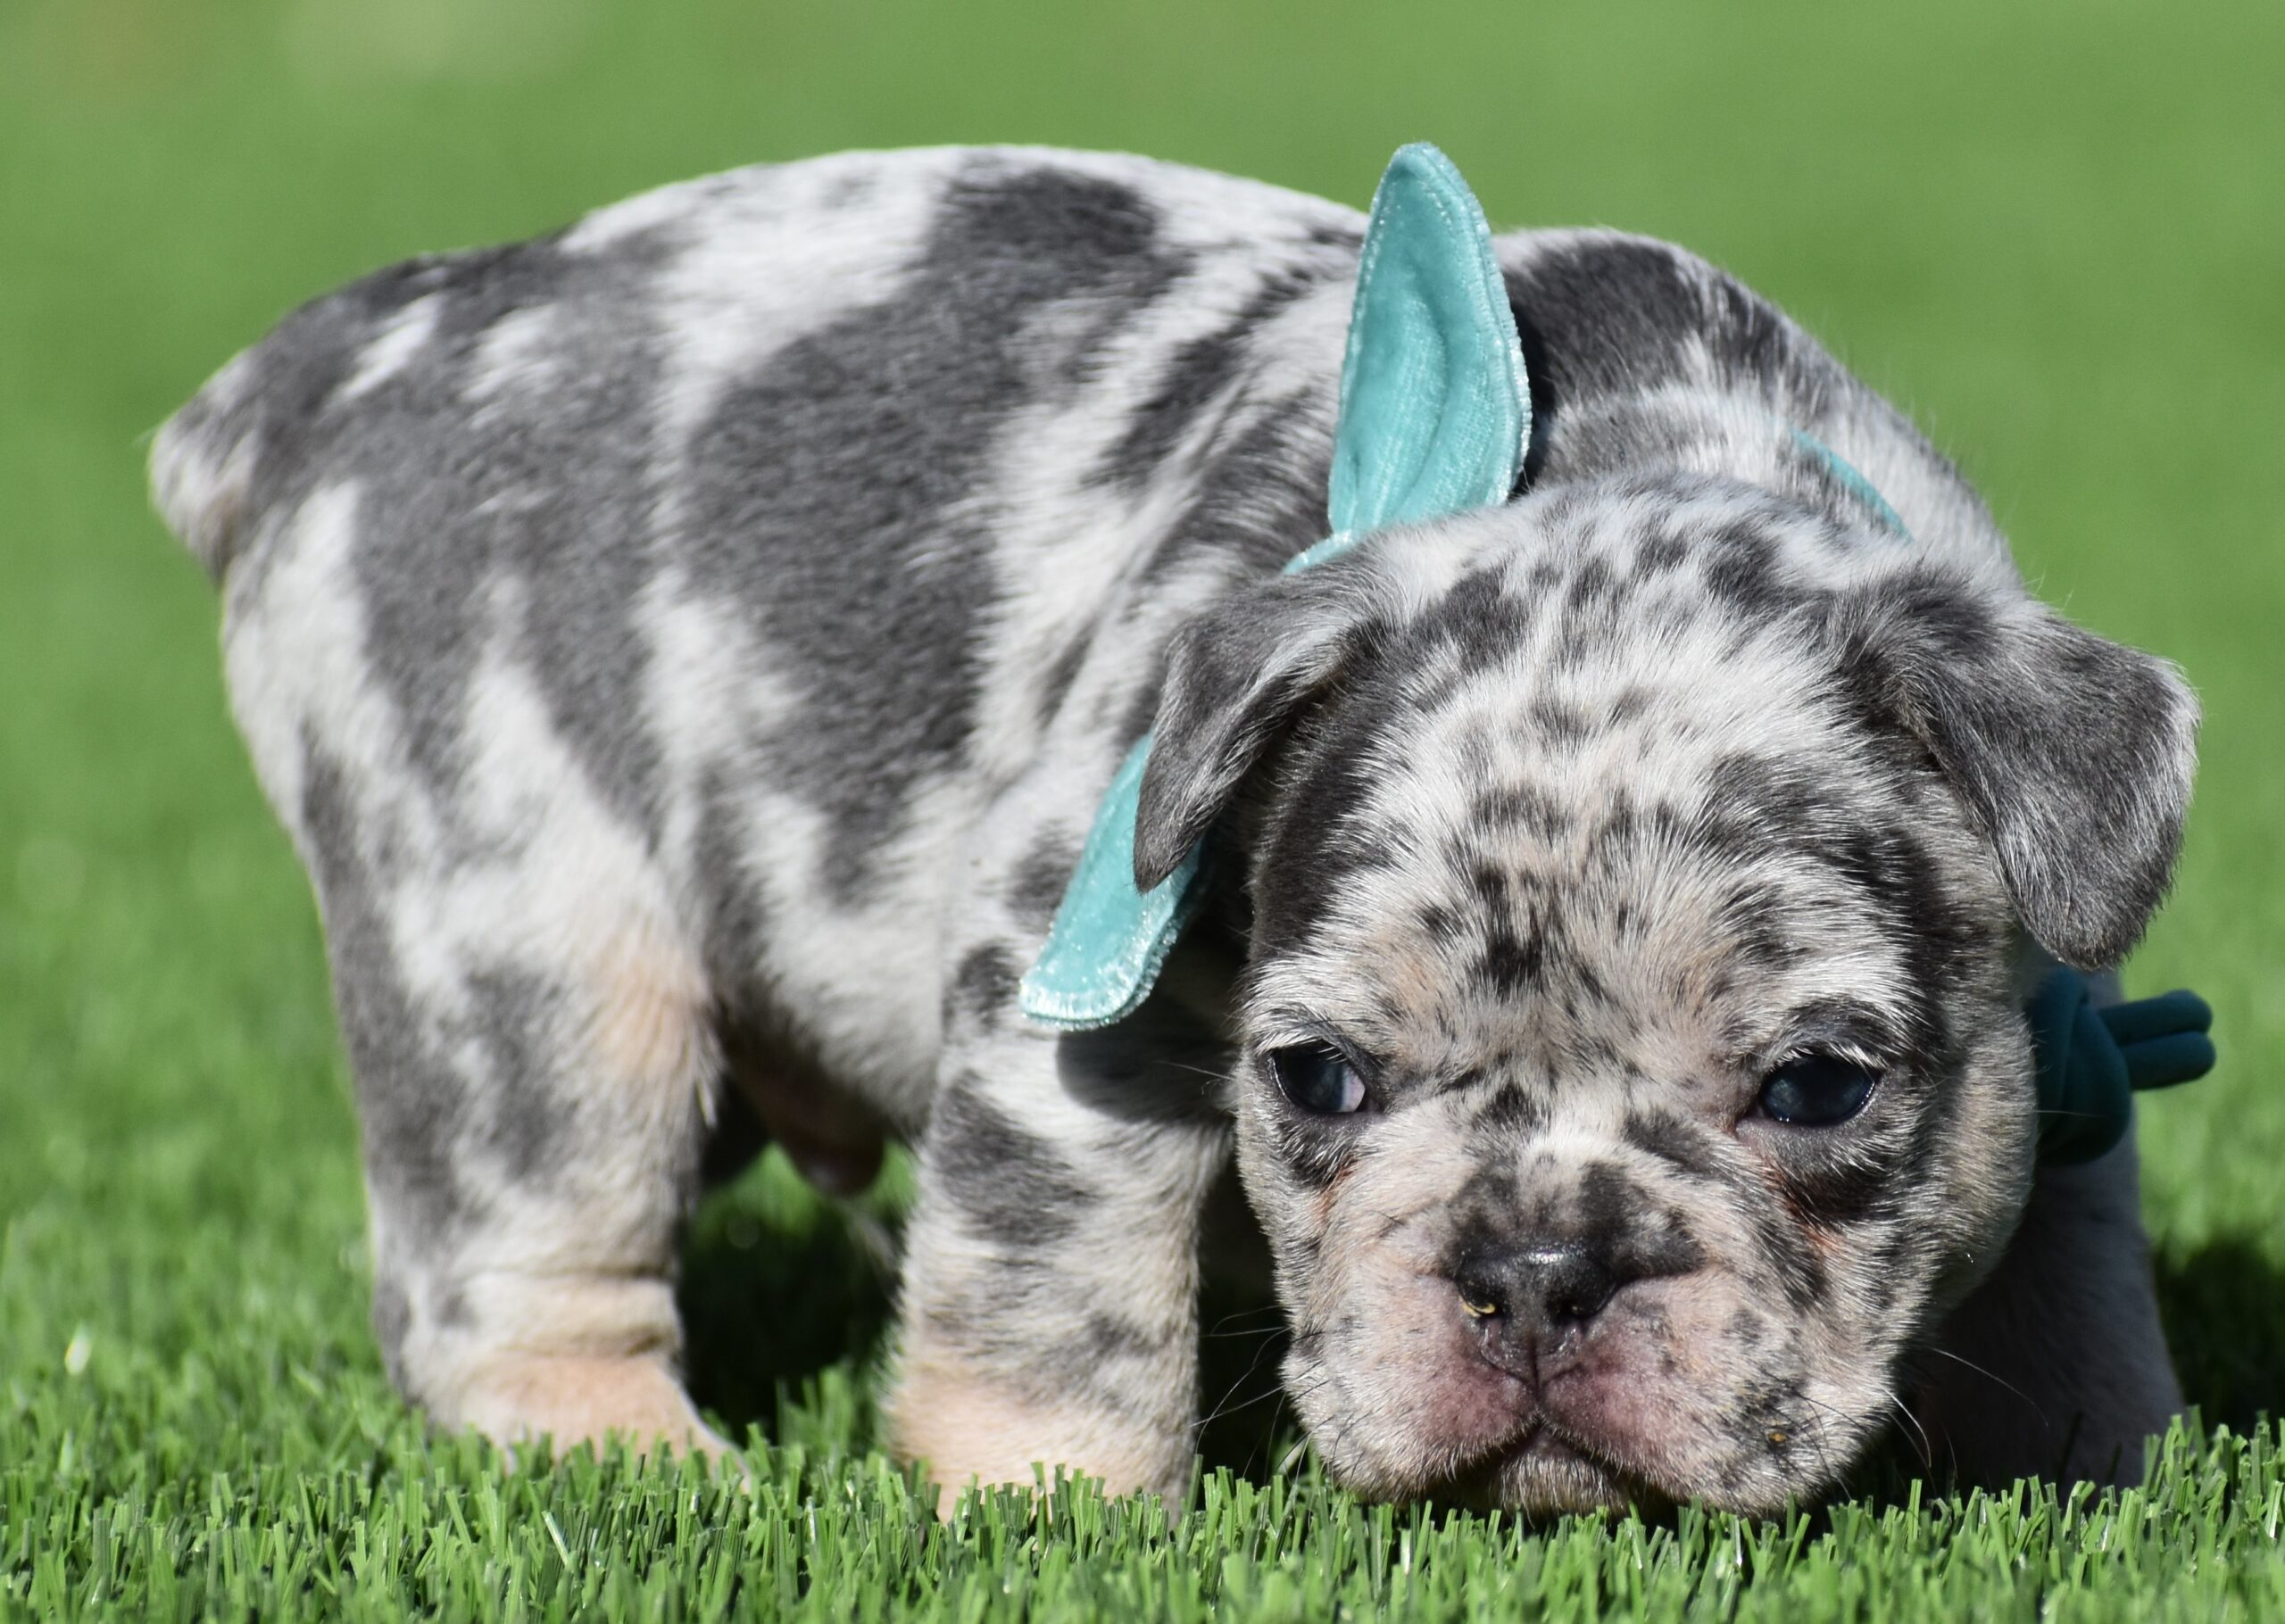 Puppy with Light Blue Bow